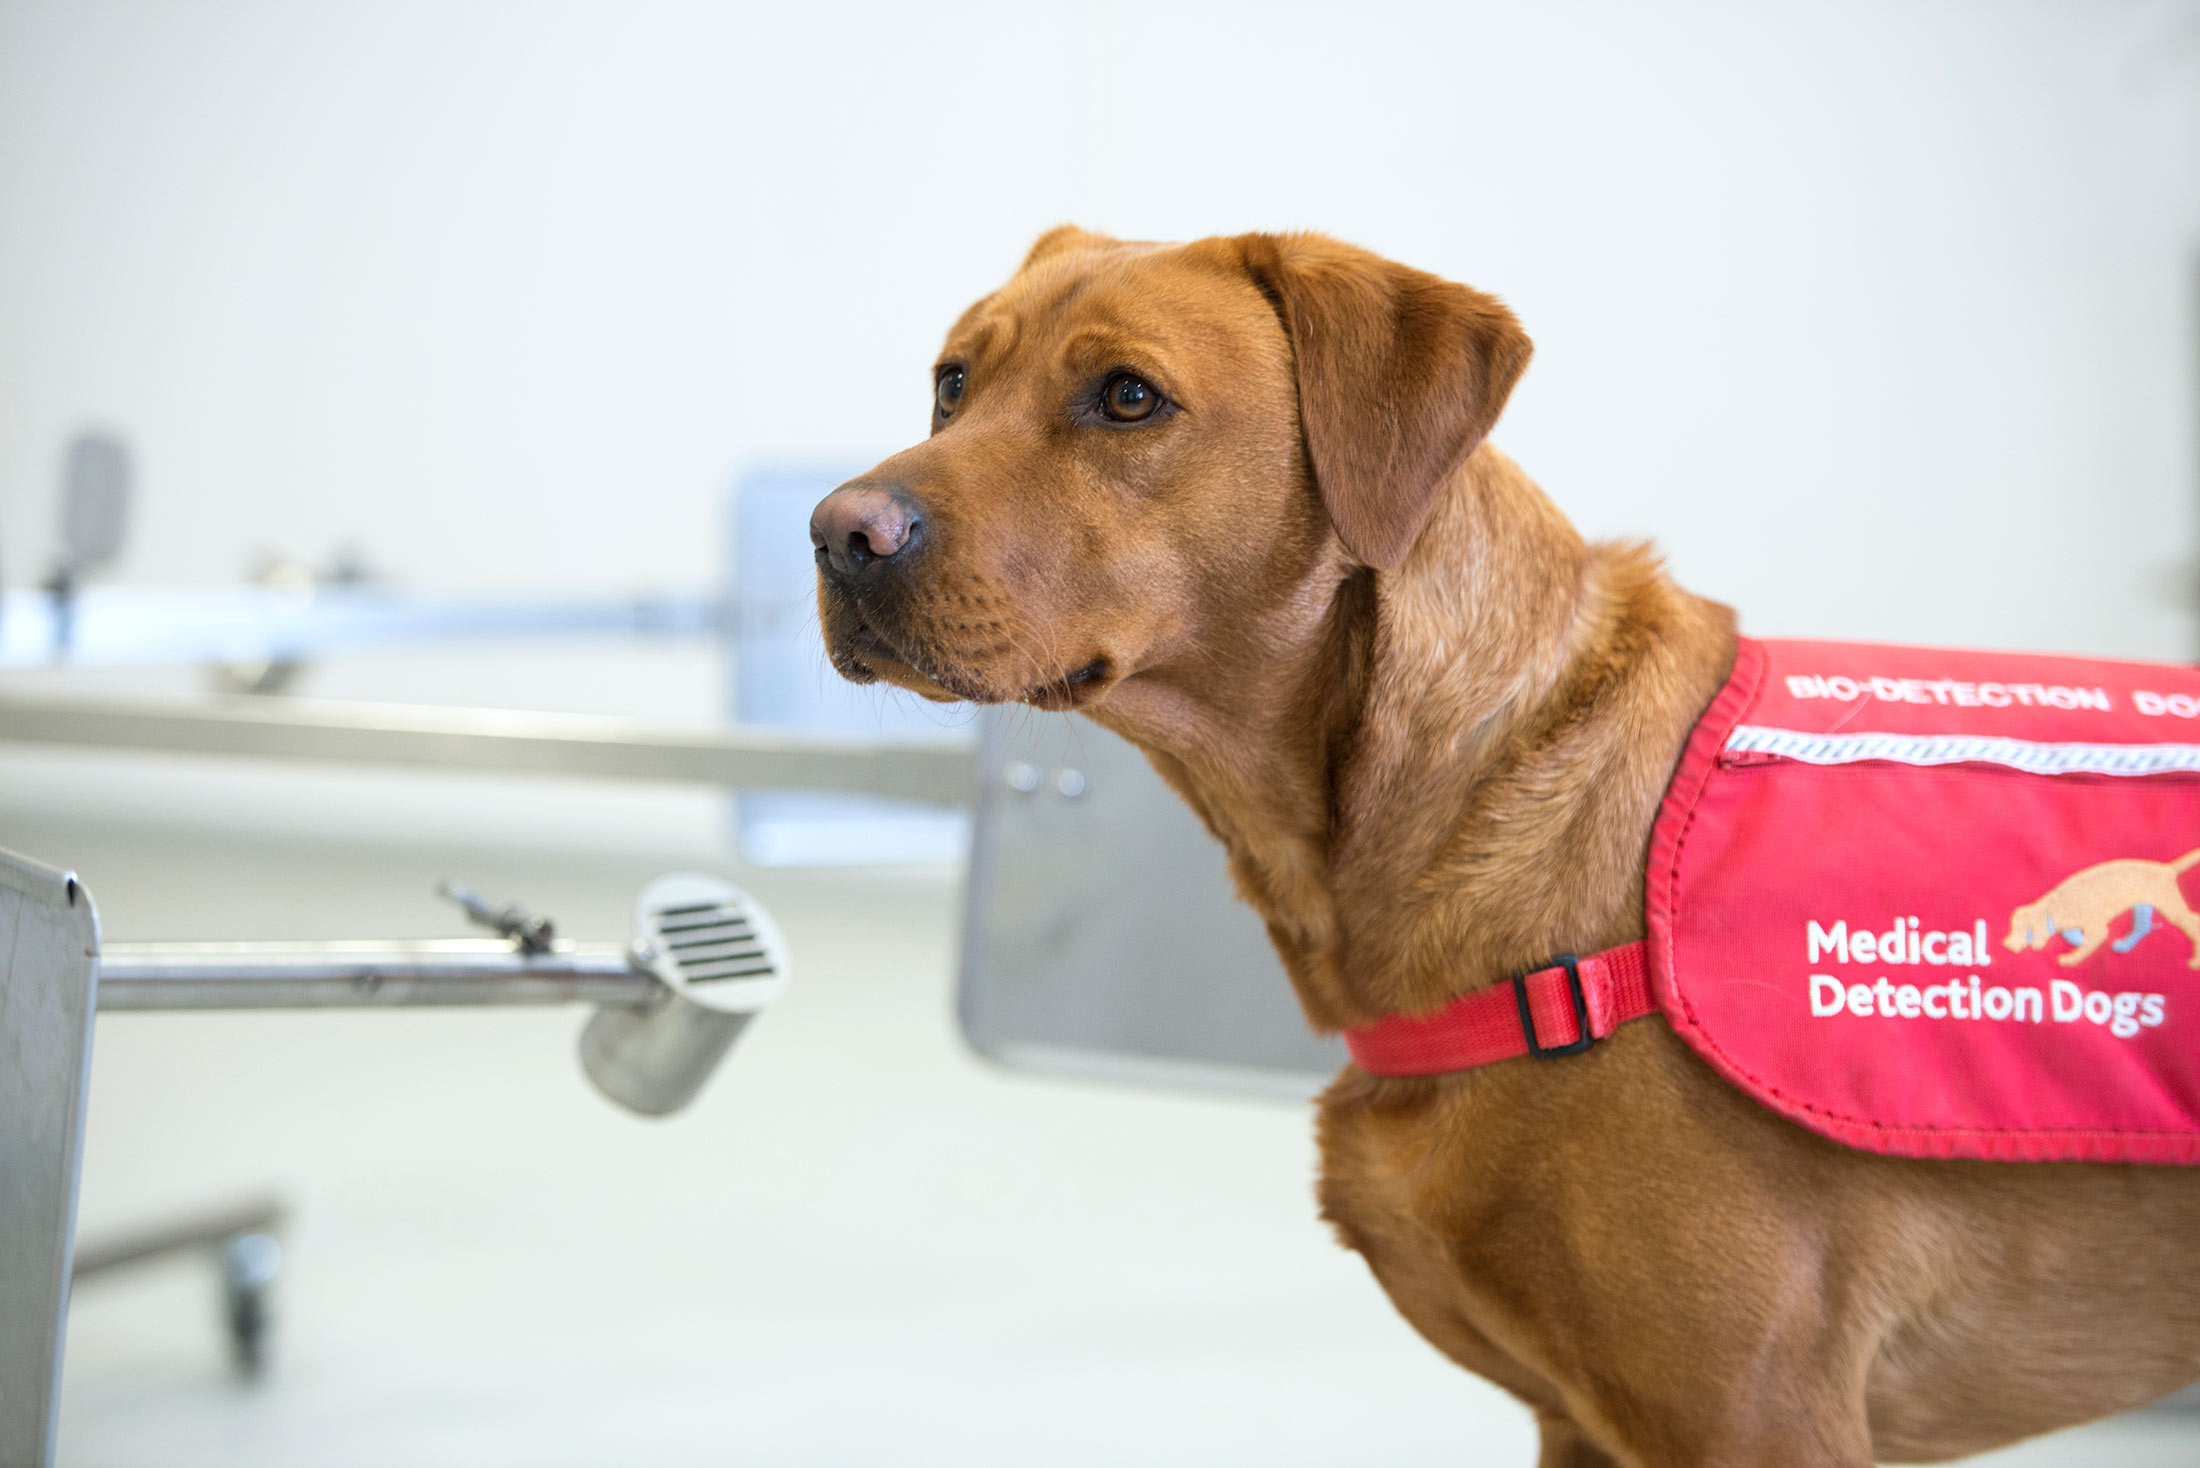 Sniffer Dogs Are 94% Accurate At Detecting Covid